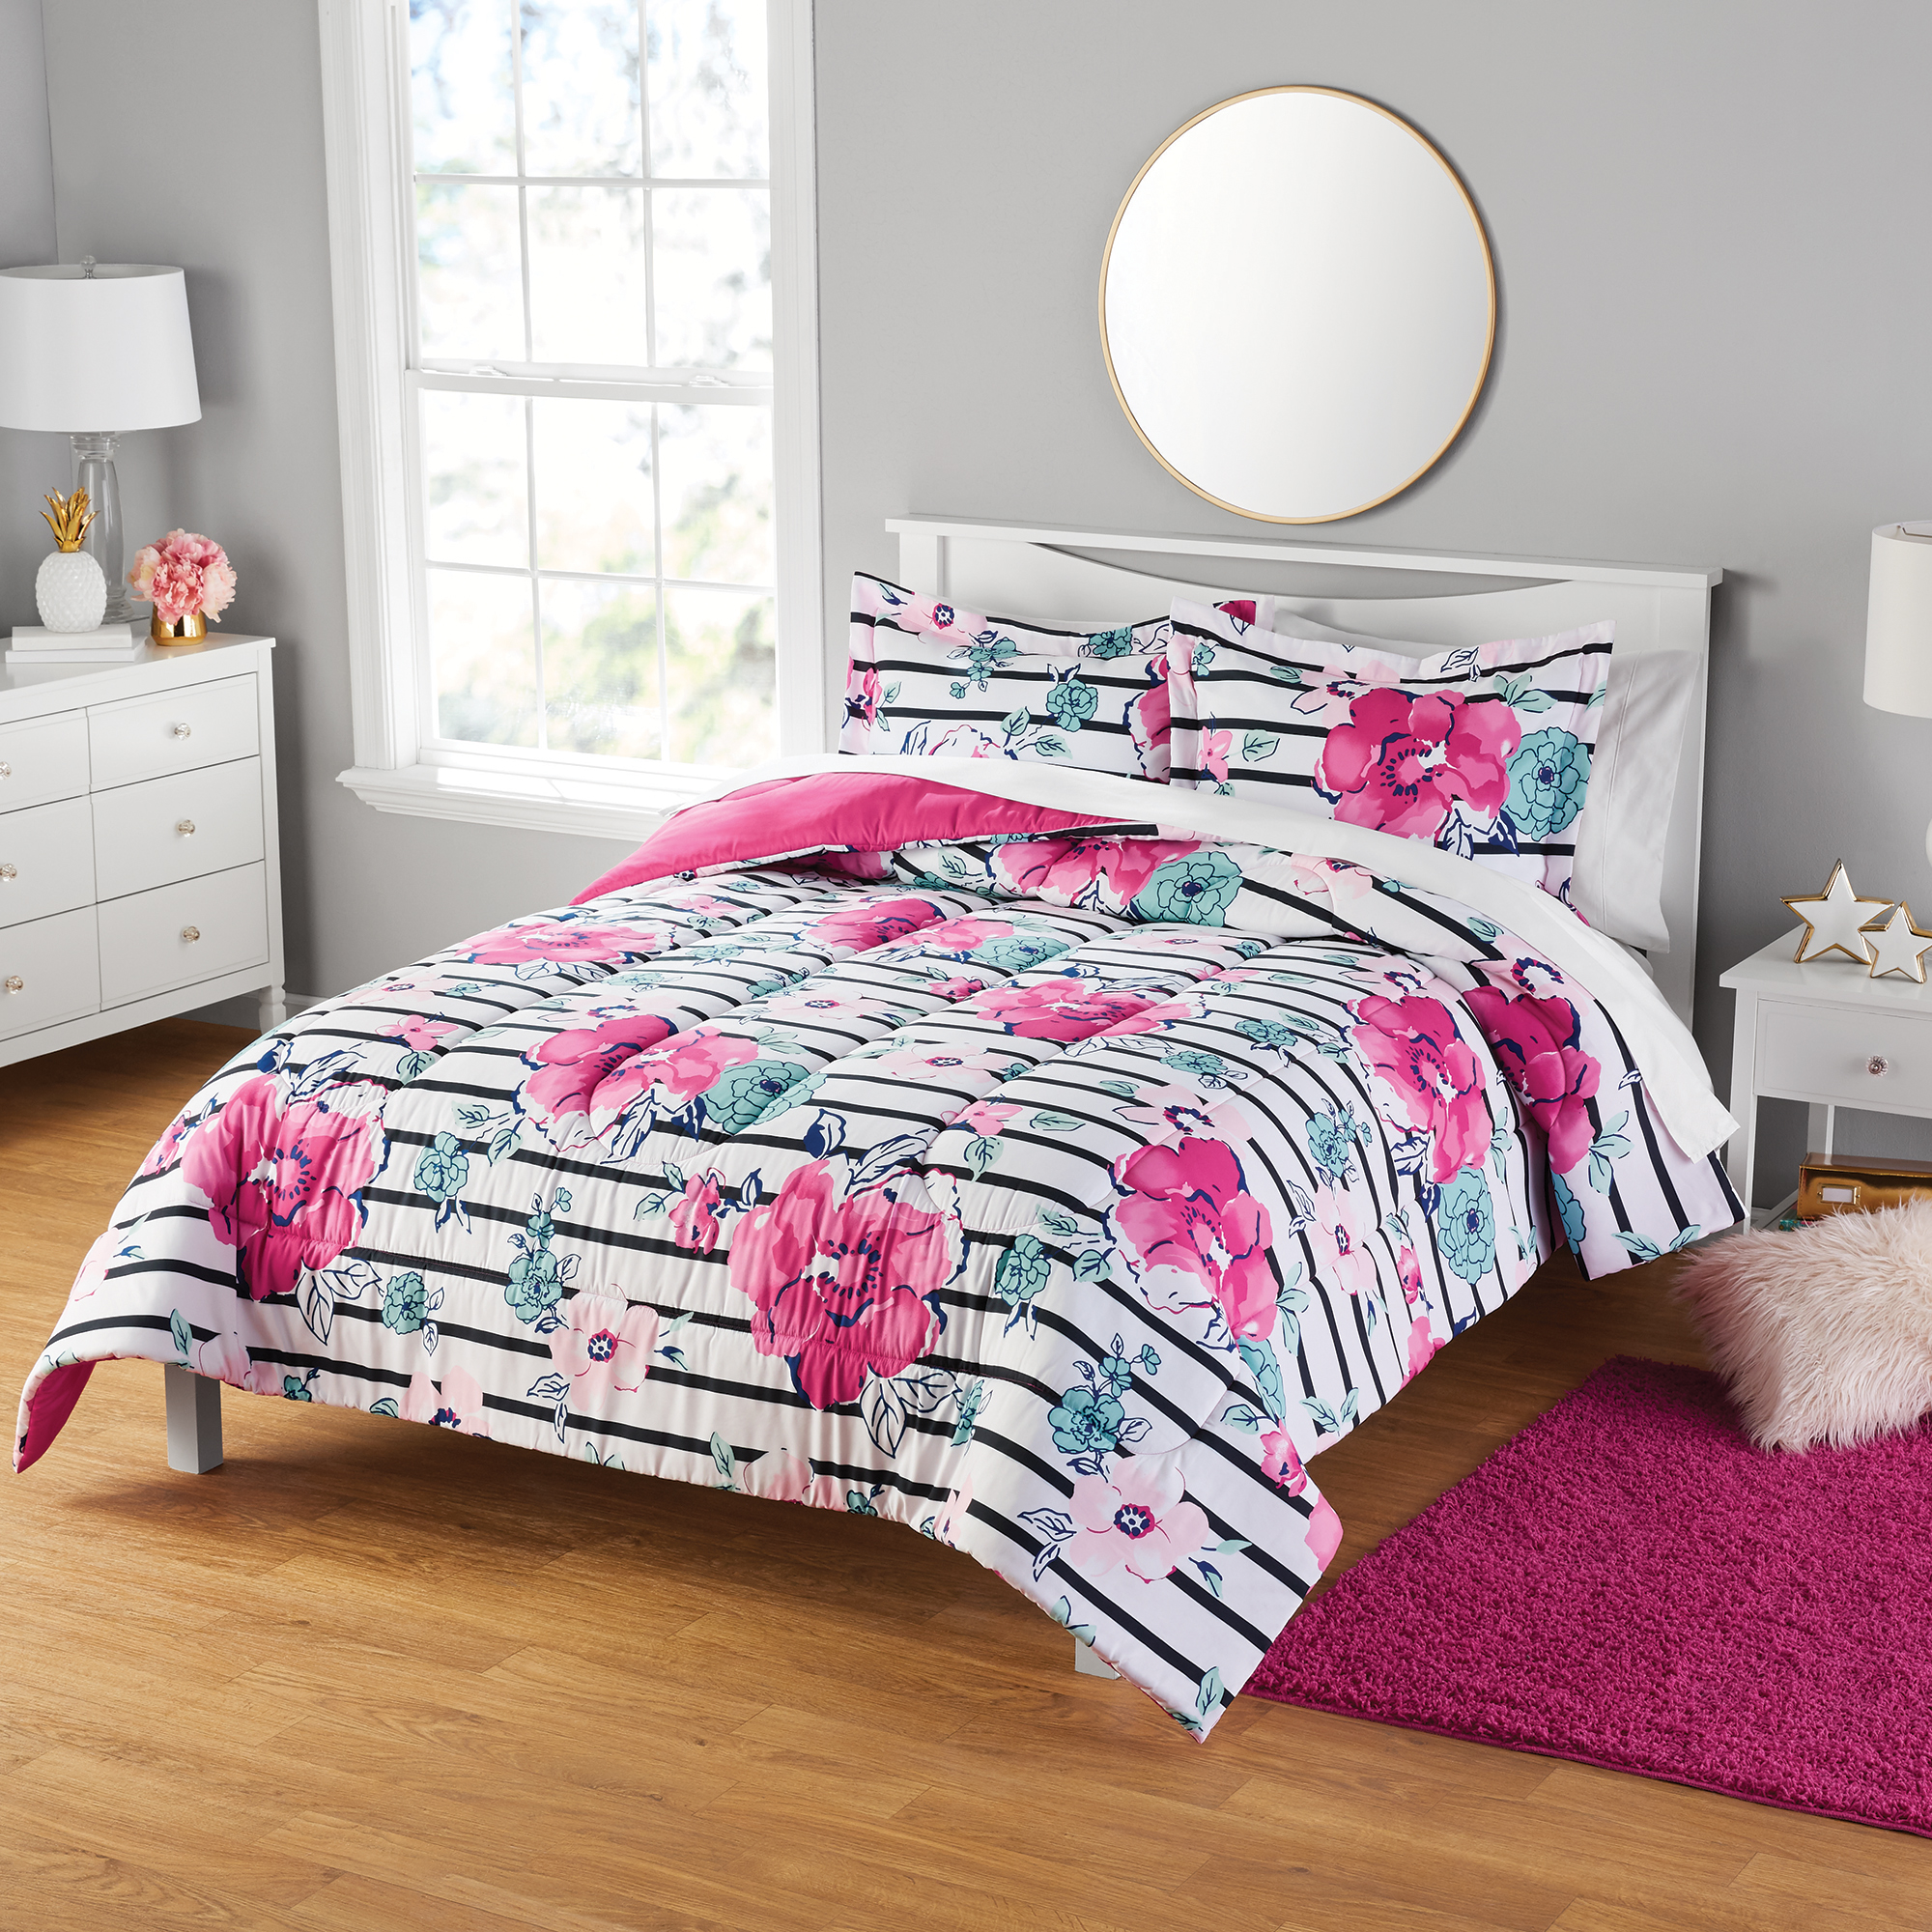 Your Zone Floral Print Comforter and Sham Set